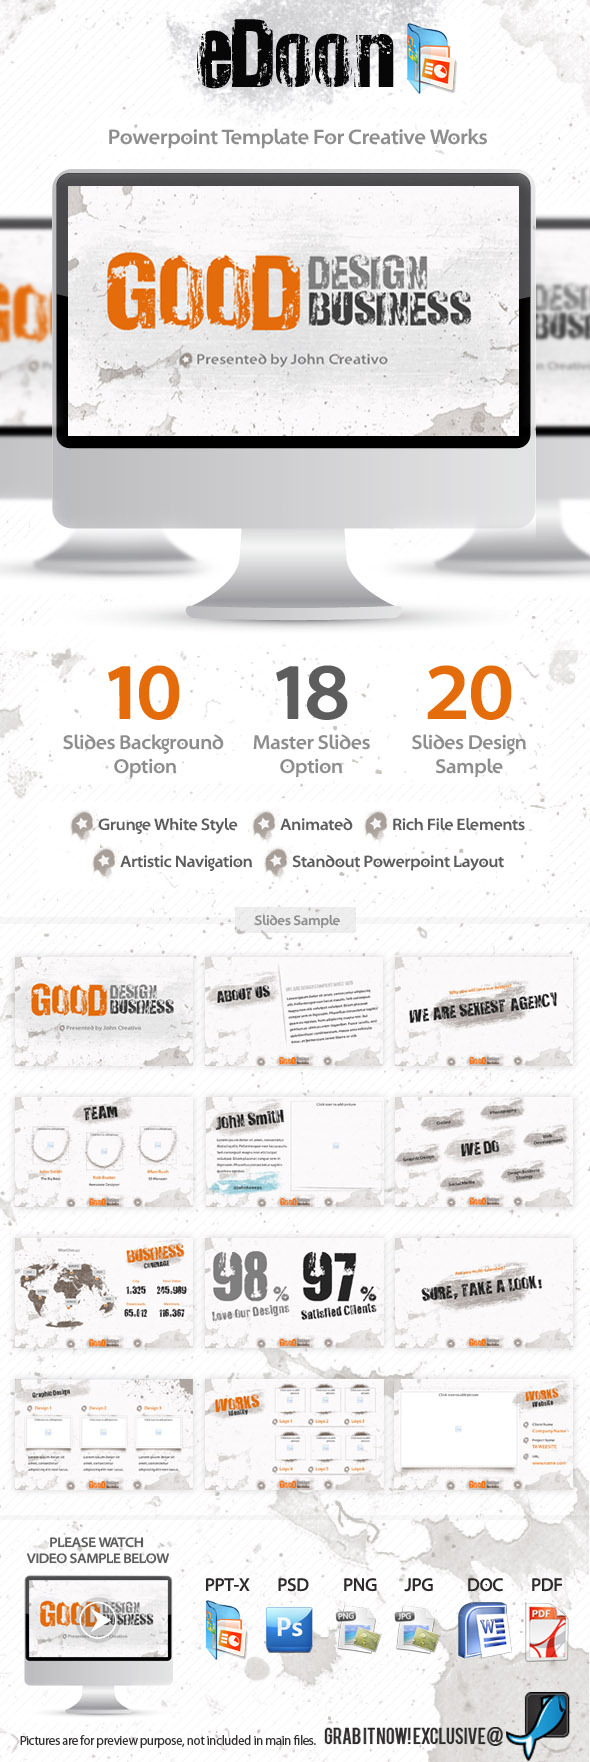 eDoon Powerpoint Template For Creative Works